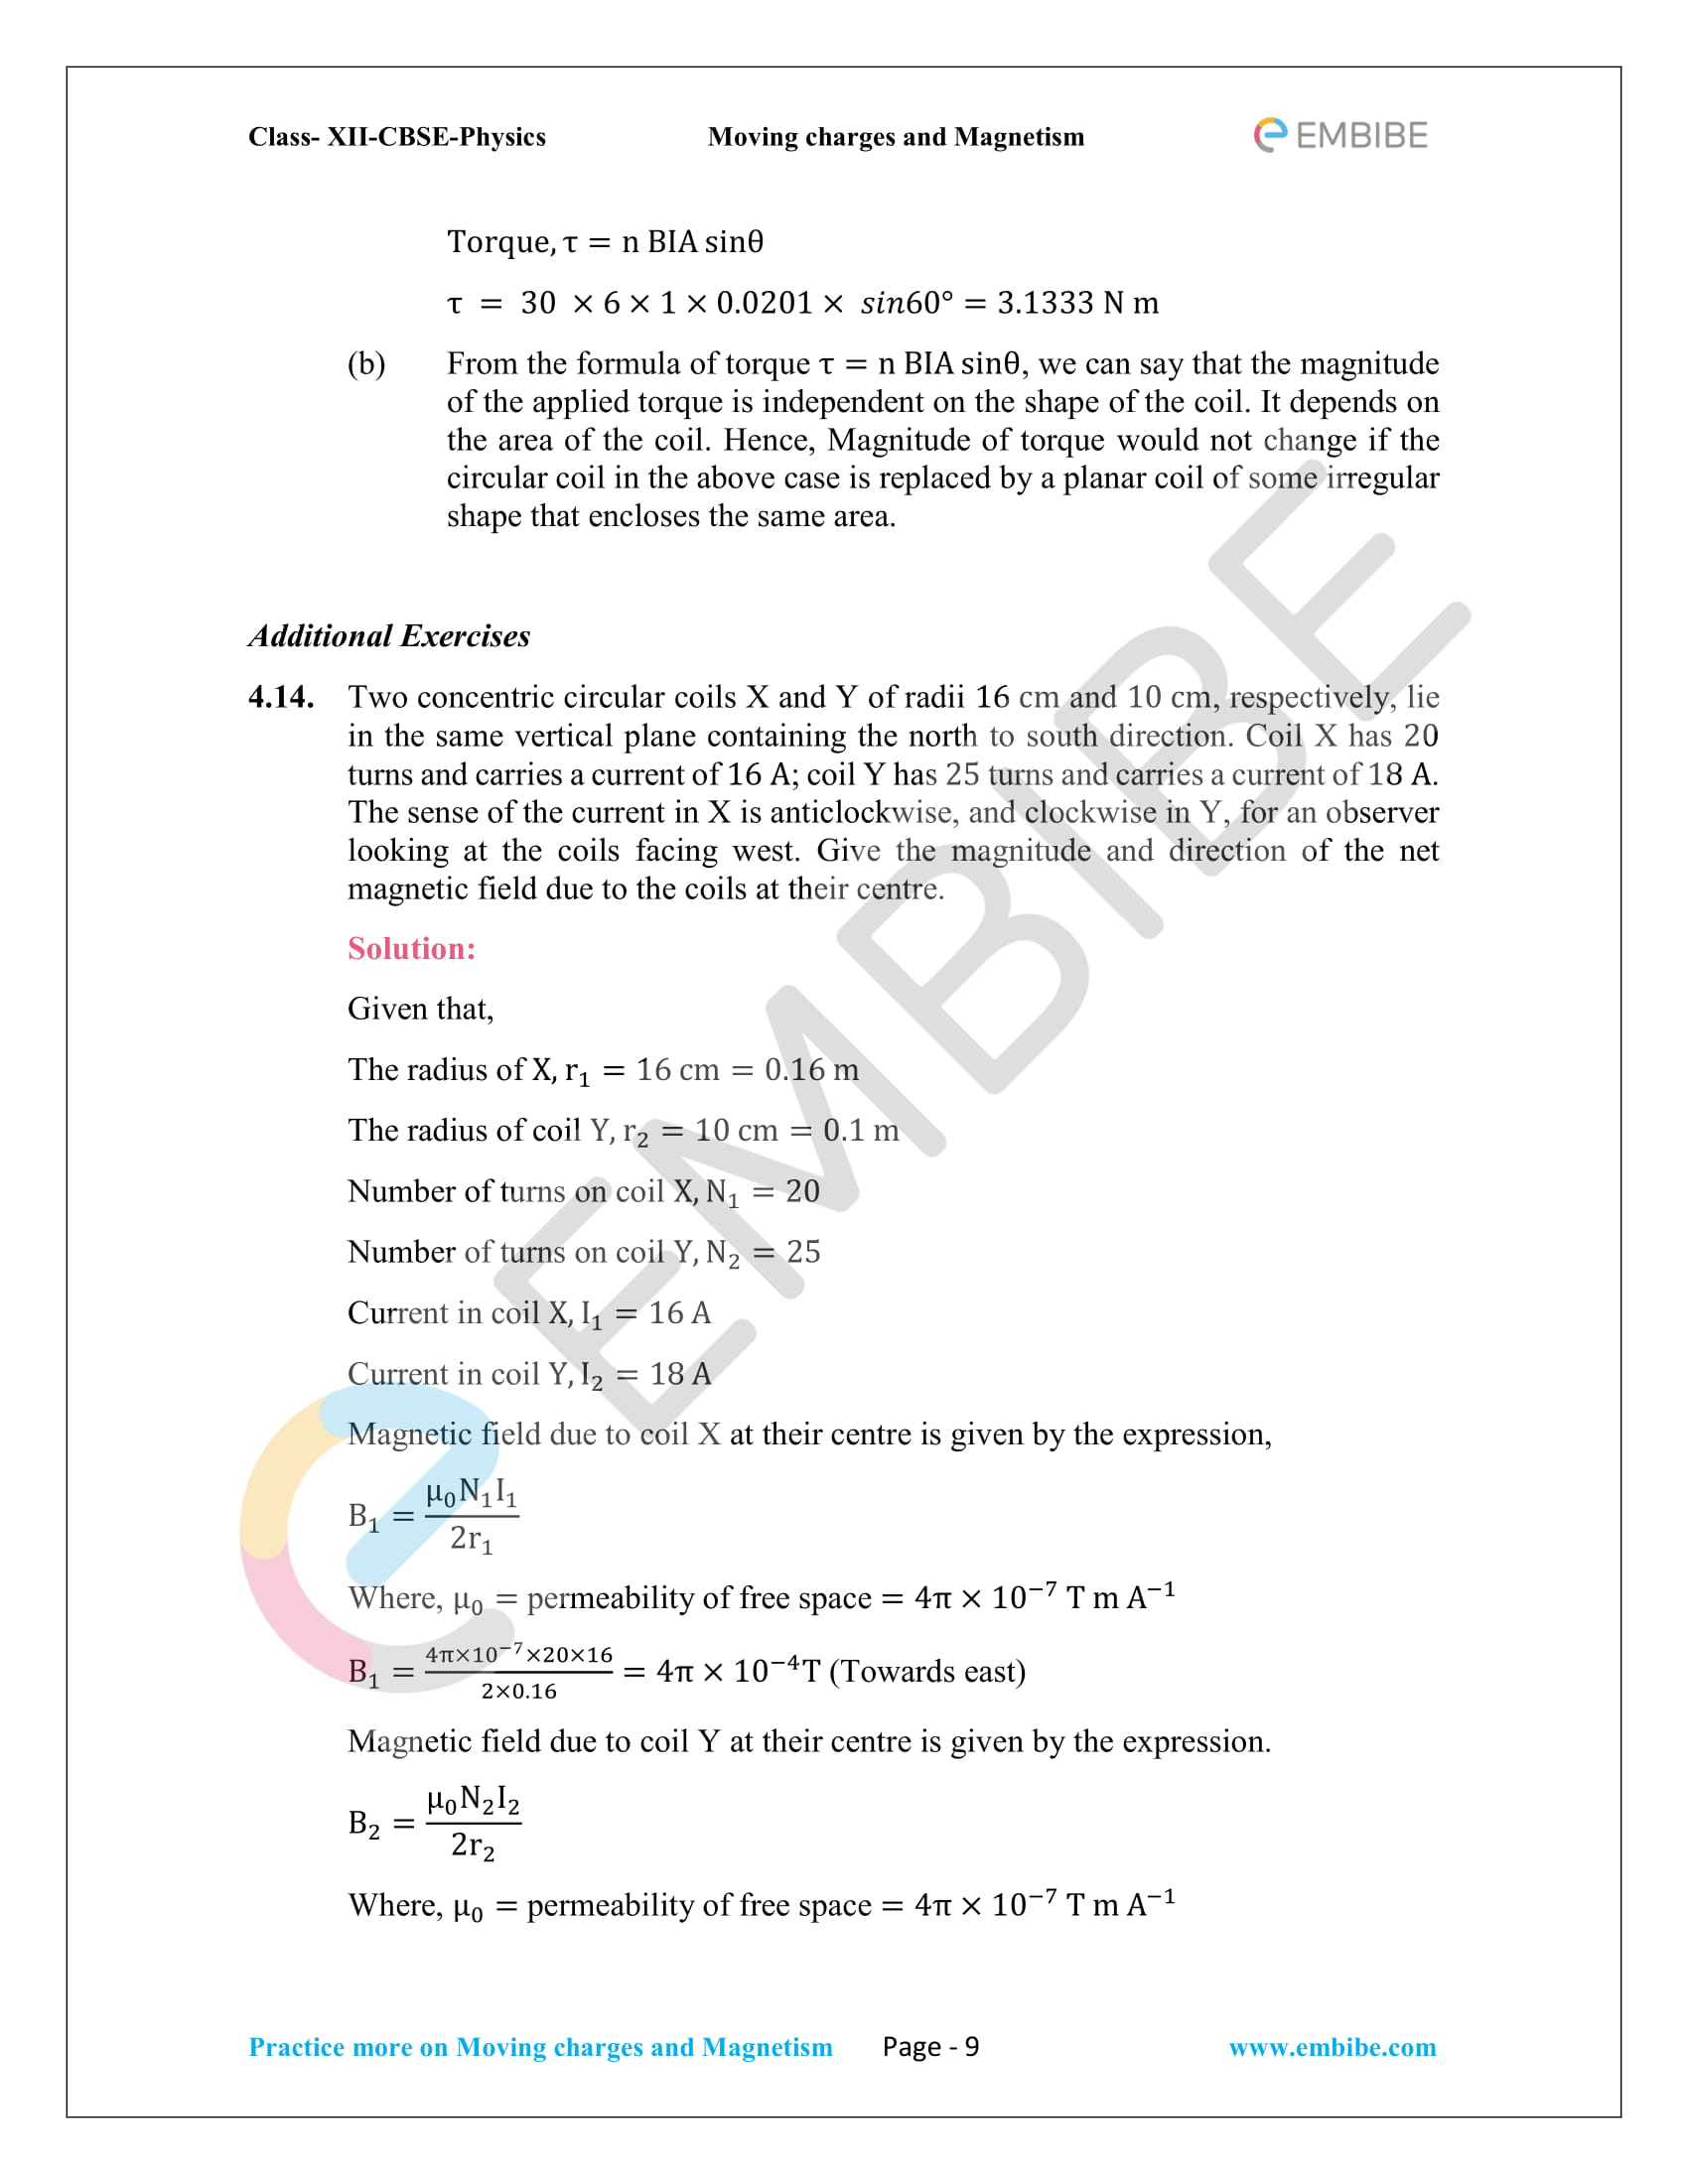 NCERT_Grade 12_Physics_Ch_04_Moving Charges and Magnetism-09